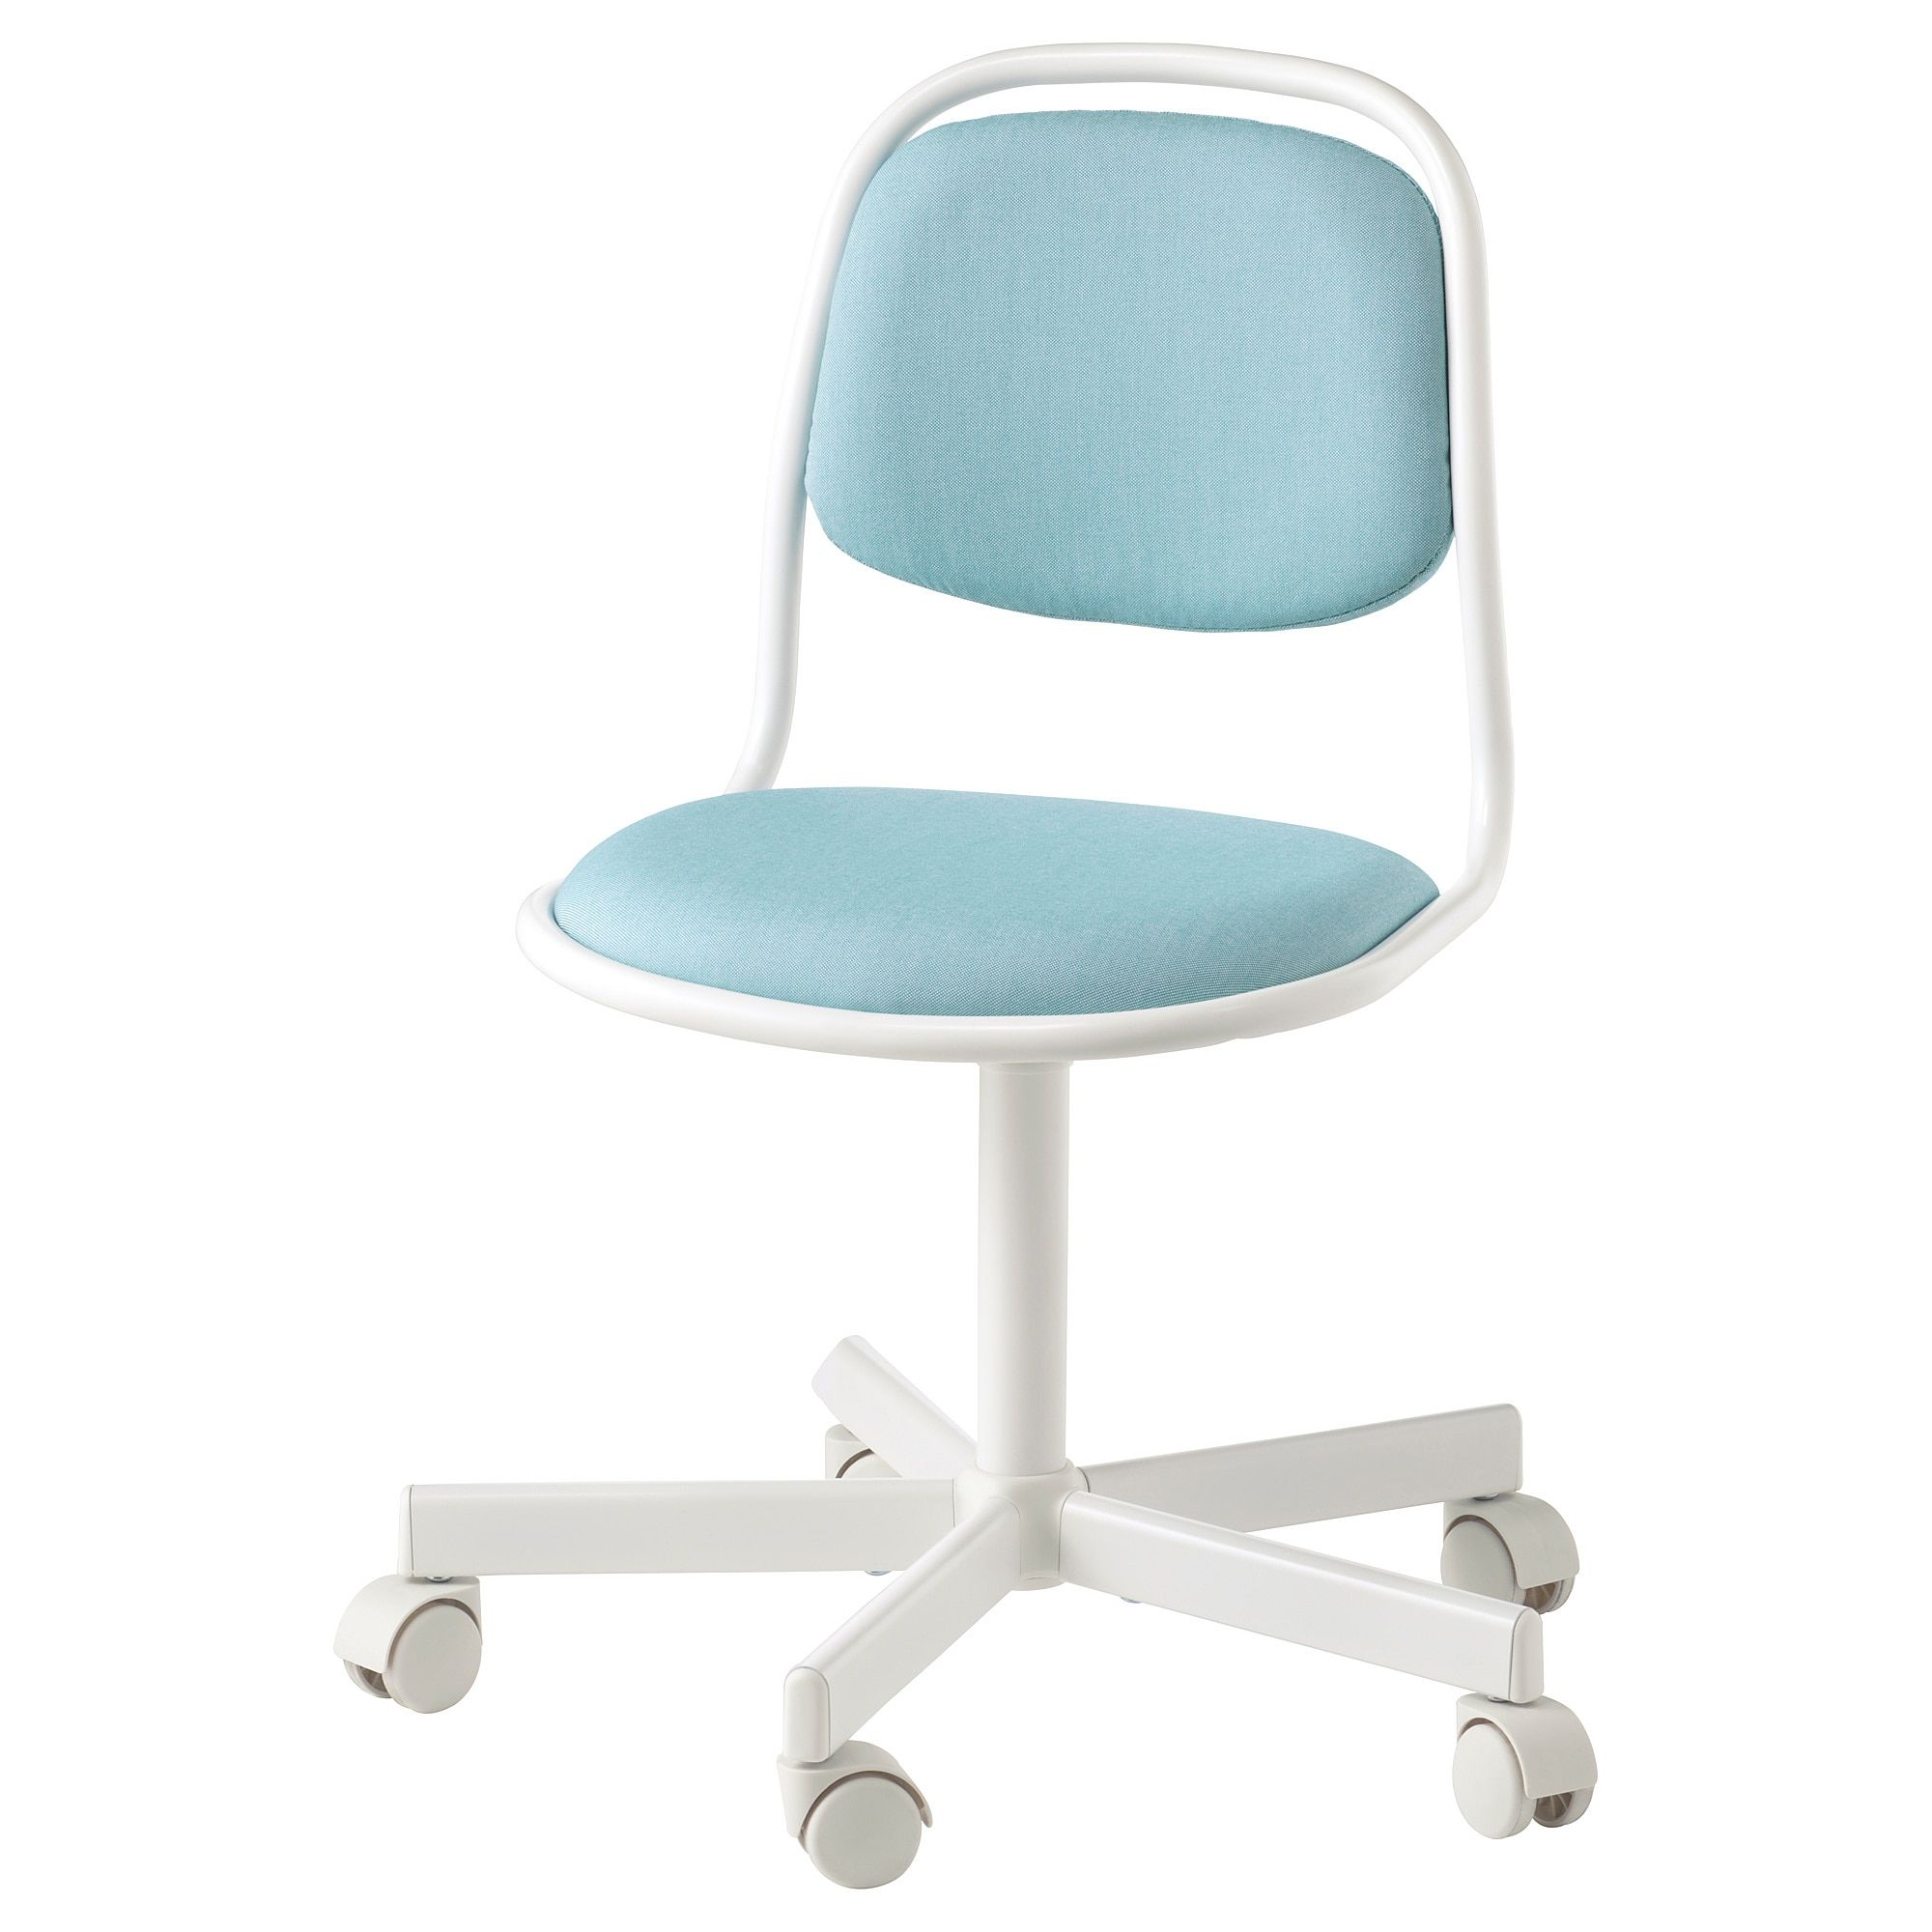 Magnificent Orfjall Childs Desk Chair White Vissle Blue Green In 2019 Machost Co Dining Chair Design Ideas Machostcouk